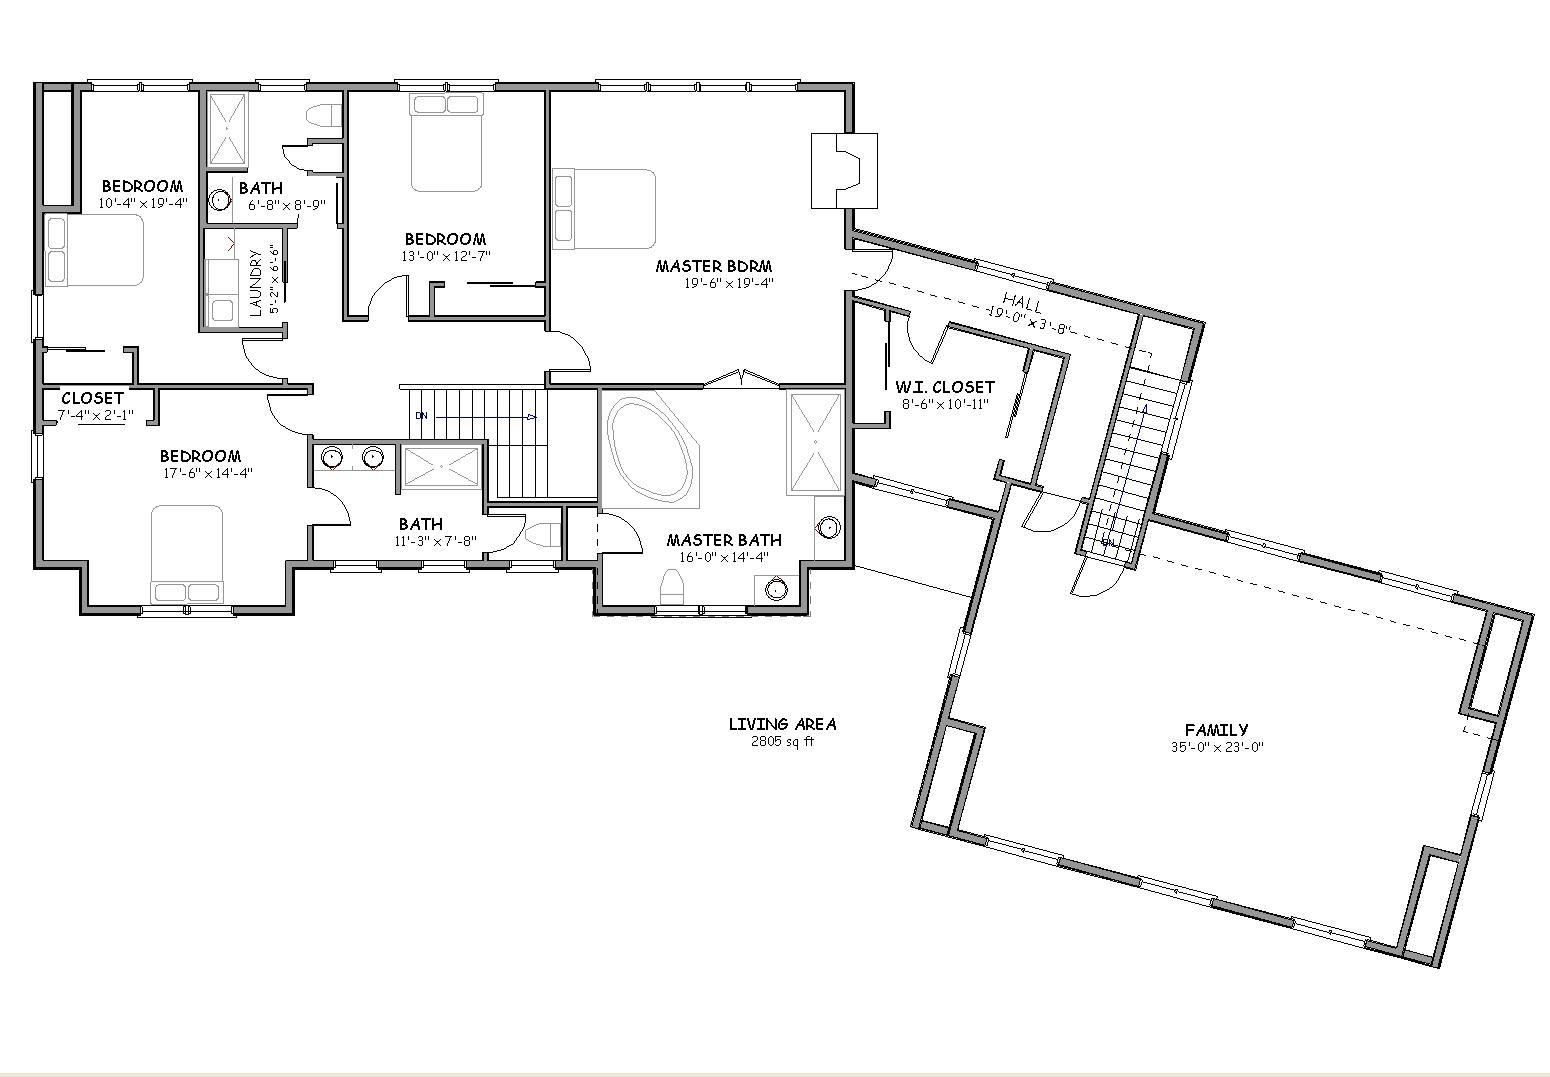 Home Plan And A Search Engine That Chooses Designs By Style Browse Nearly 40000 Ready Made House Plans To Find Your Dream Home Today Whether You Re A Builder